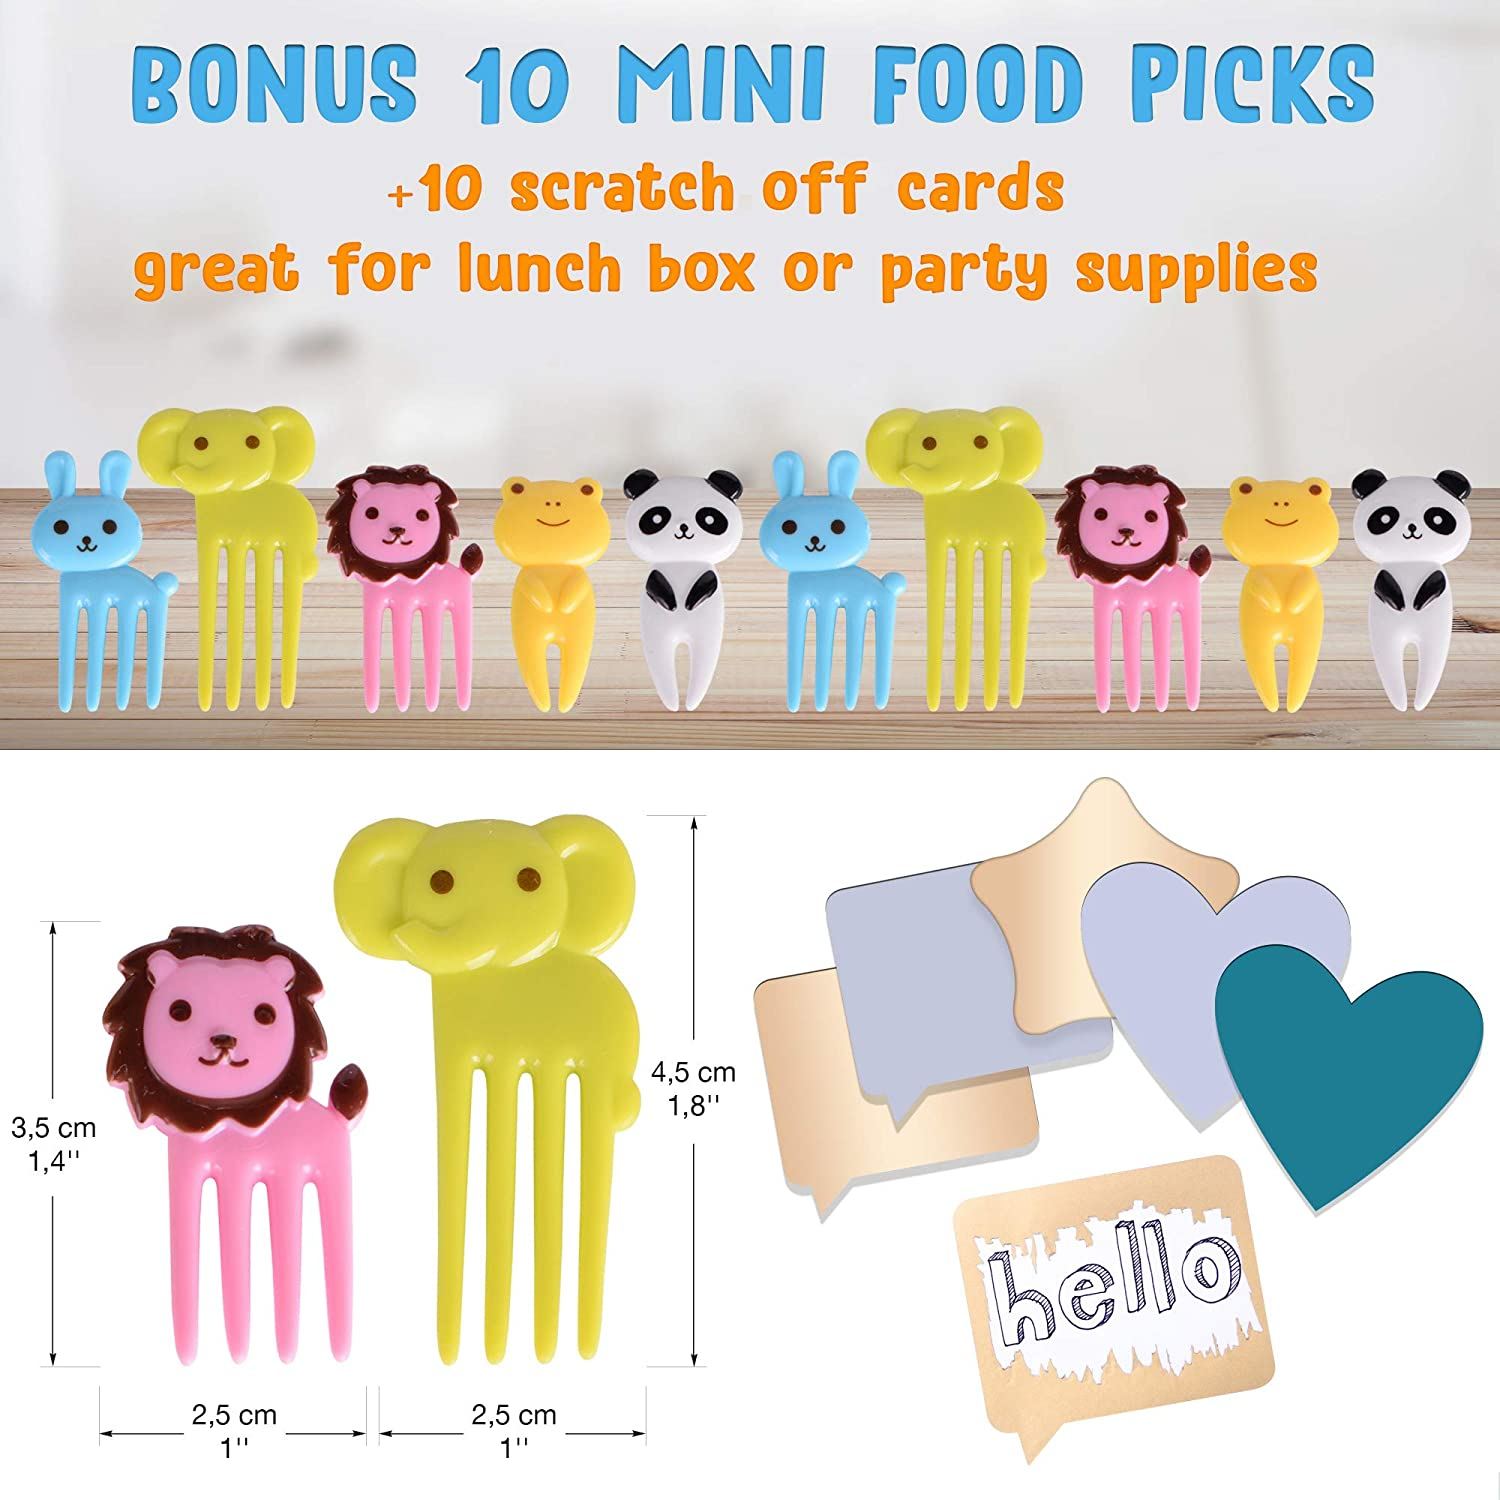 GET FRESH Sandwich Cutters for Kids – [20-pcs] Set with 5 Sandwich Shapes/Cookie Cutters/Bread Cutters – Comes with 5 Vegetable Cutters and Bonus 10 ...